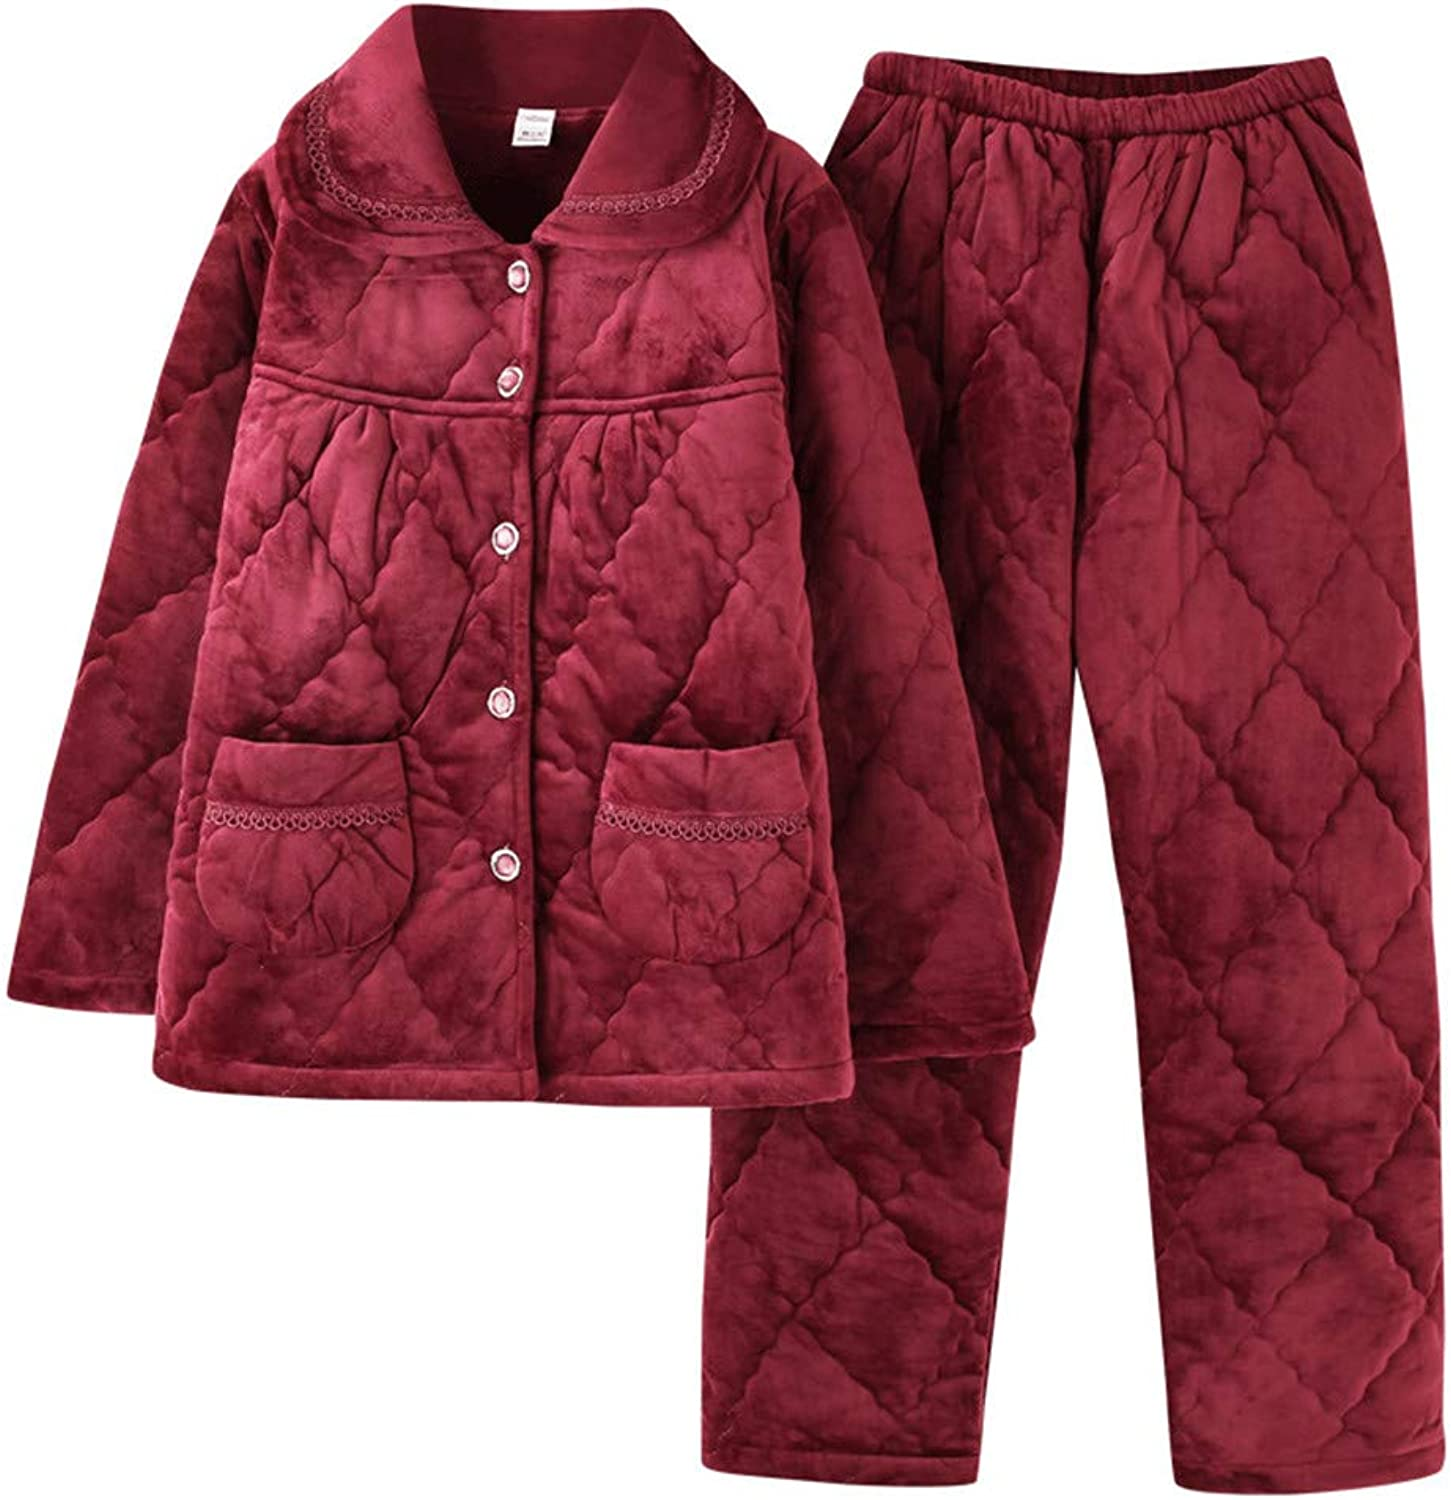 Lonimor Ladies Pajamas Autumn Winter Flannel Thick LongSleeved Home Service Suit